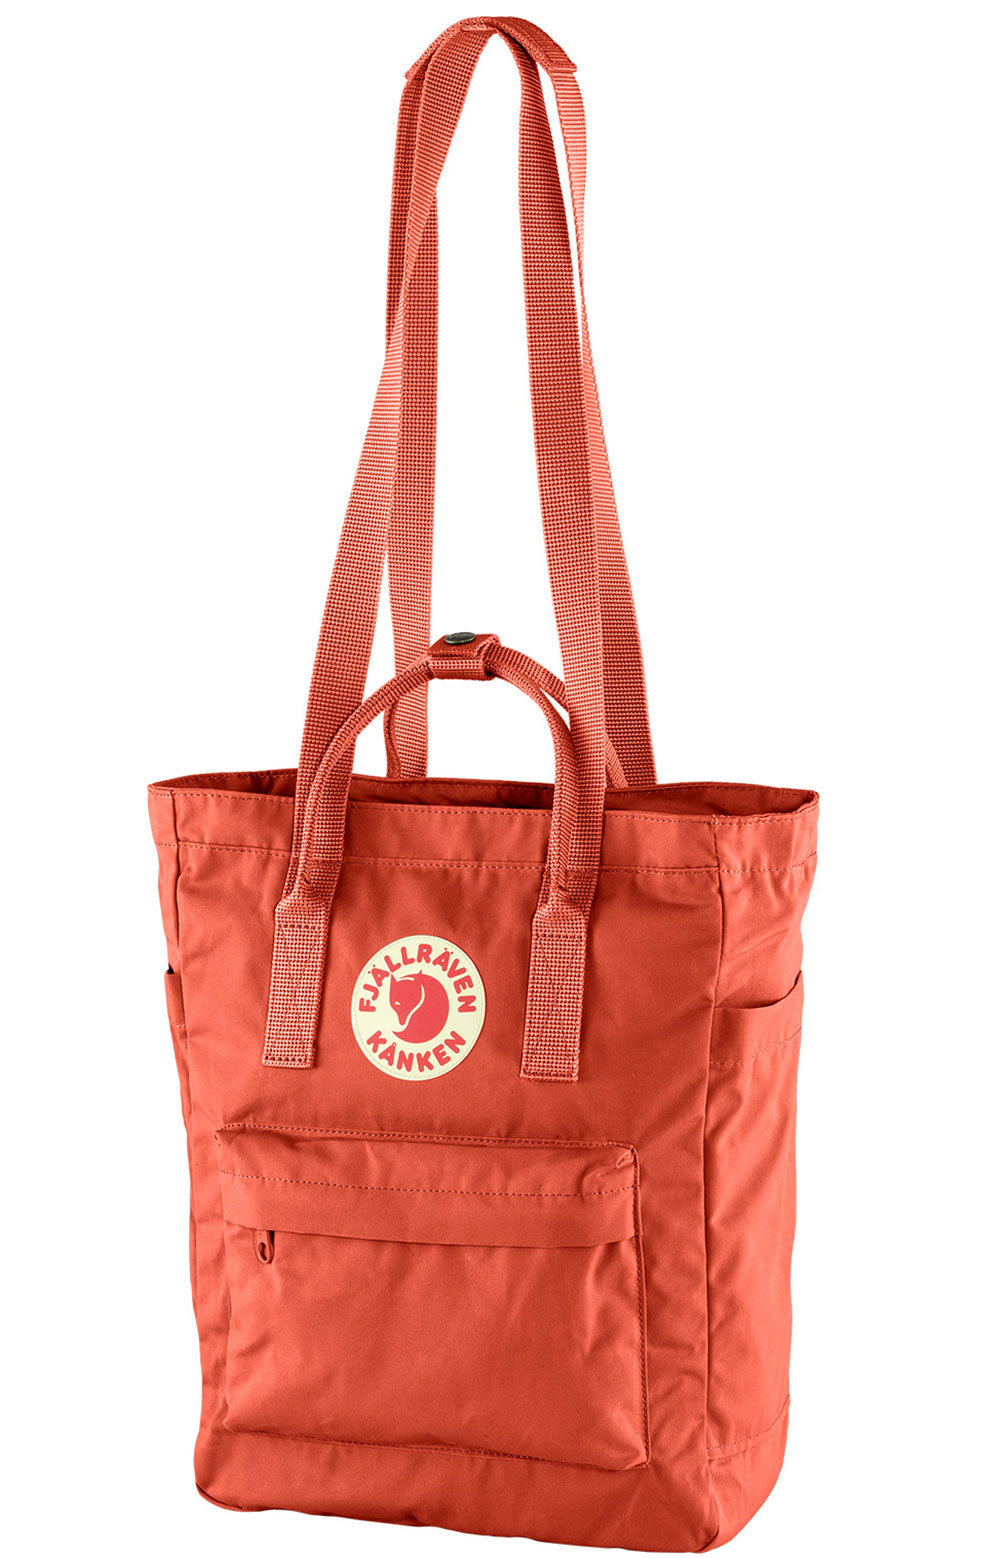 Kanken Tote Bag - Rowan Red 3